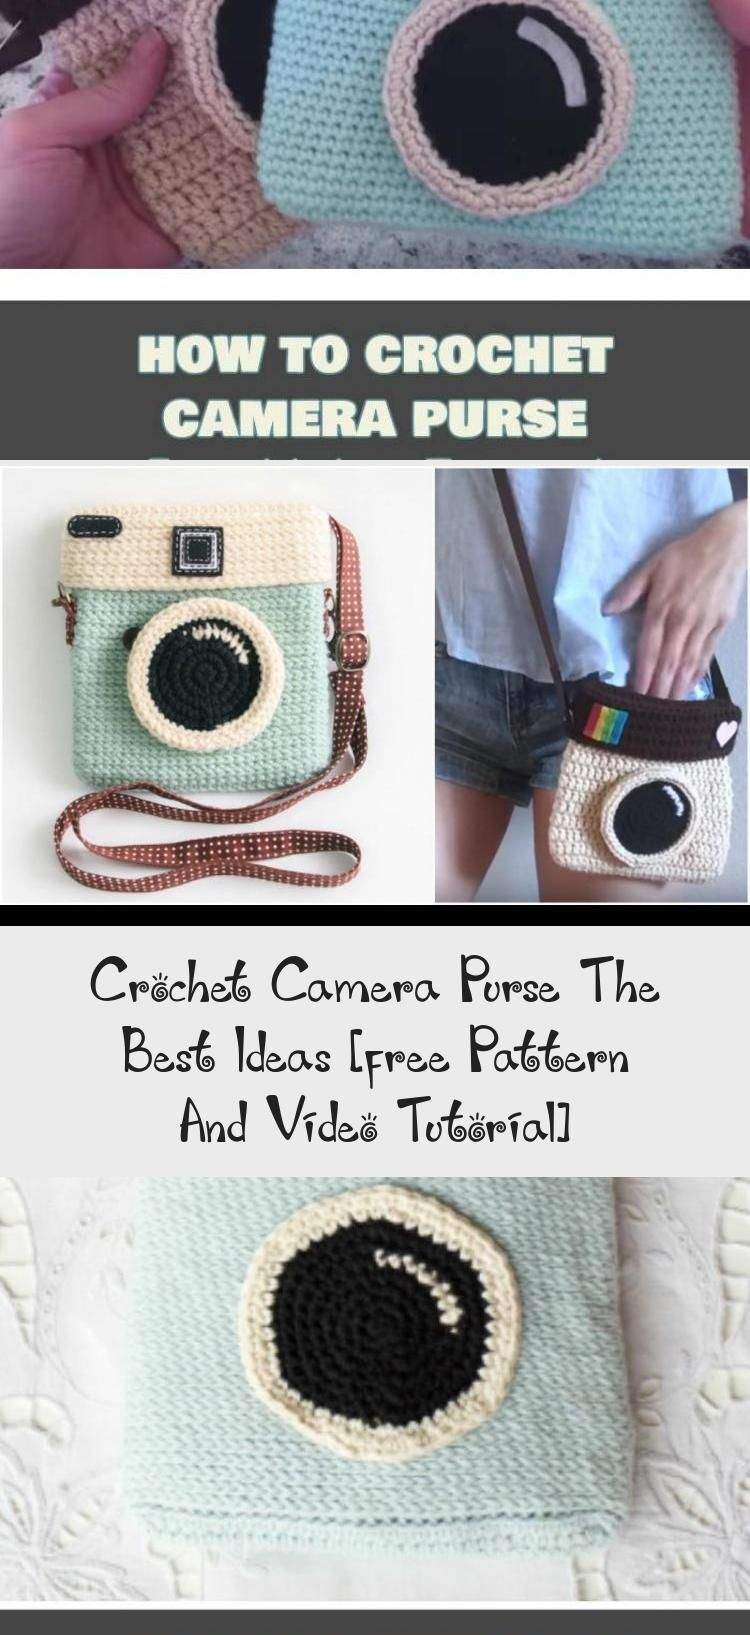 Crochet Camera Purse The Best Ideas [free Pattern And Video Tutorial] - crochetthat #camerapurse Crochet Camera Purse The Best Ideas, Free Crochet Pattern and Video Tutorial #crochetEarrings #crochetSlippers #crochetBracelet #crochetAmigurumi #crochetDishcloth #crochetcamera